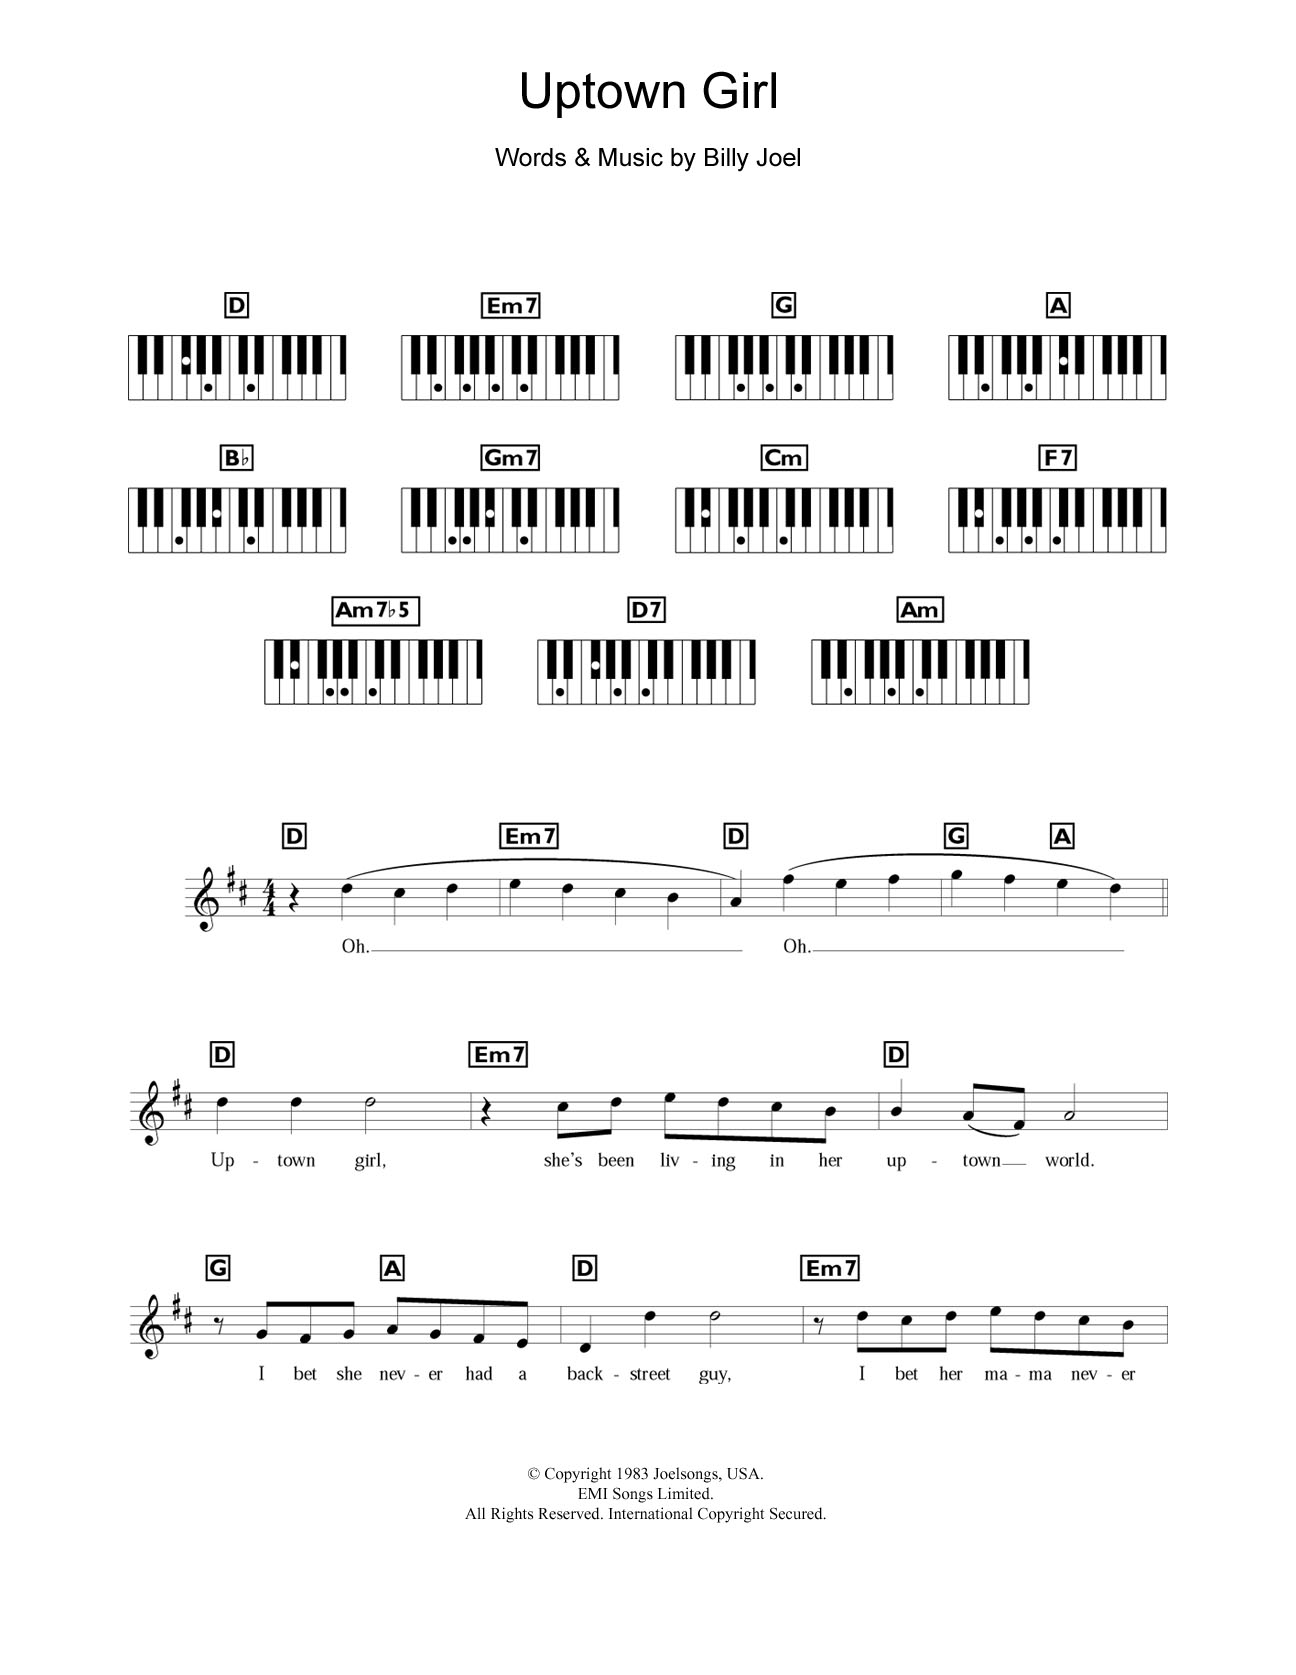 Piano chord sheet music at stantons sheet music westlife hexwebz Images